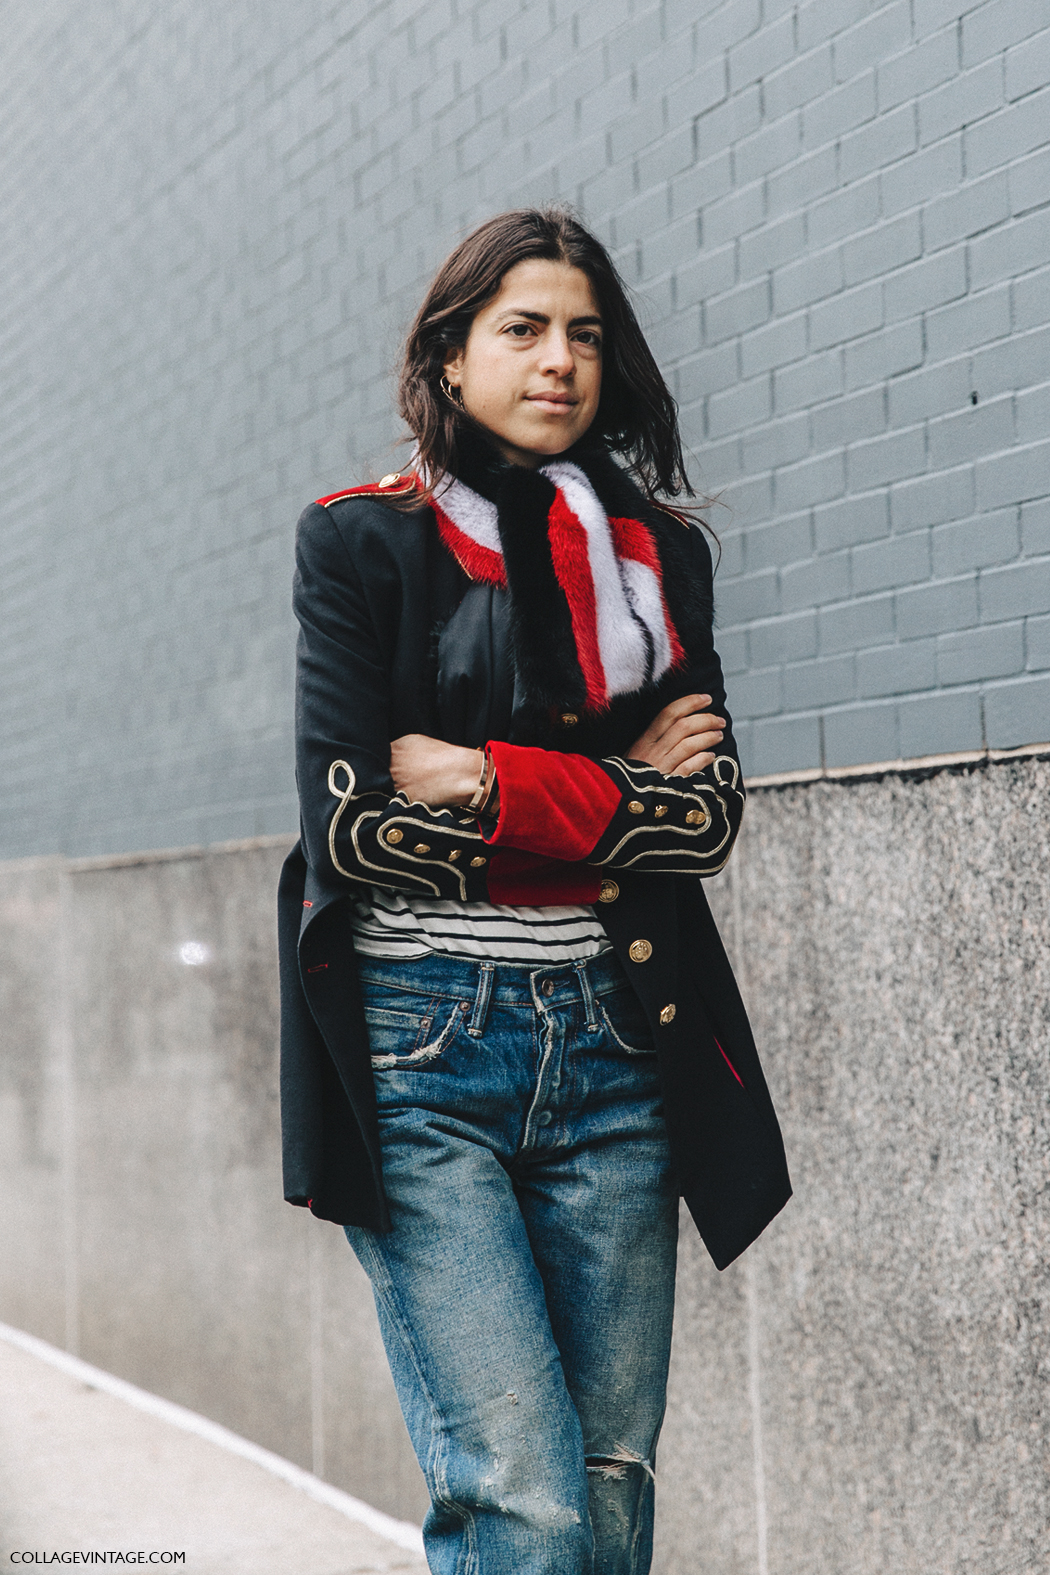 NYFW-New_York_Fashion_Week-Fall_Winter-17-Street_Style-Leandra_Medine-Man_Repeller-Jeans-Military_Jacket-5